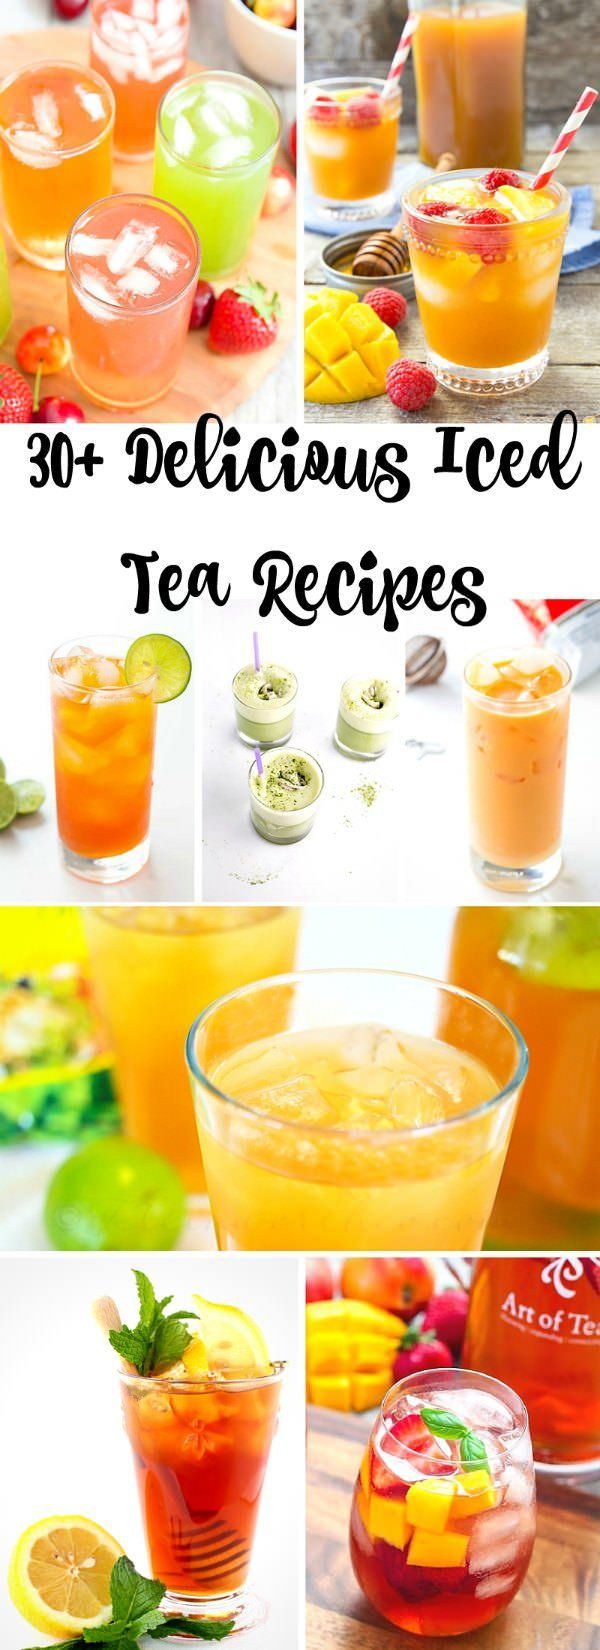 30+ Delicious Iced Tea Recipes for the Summer